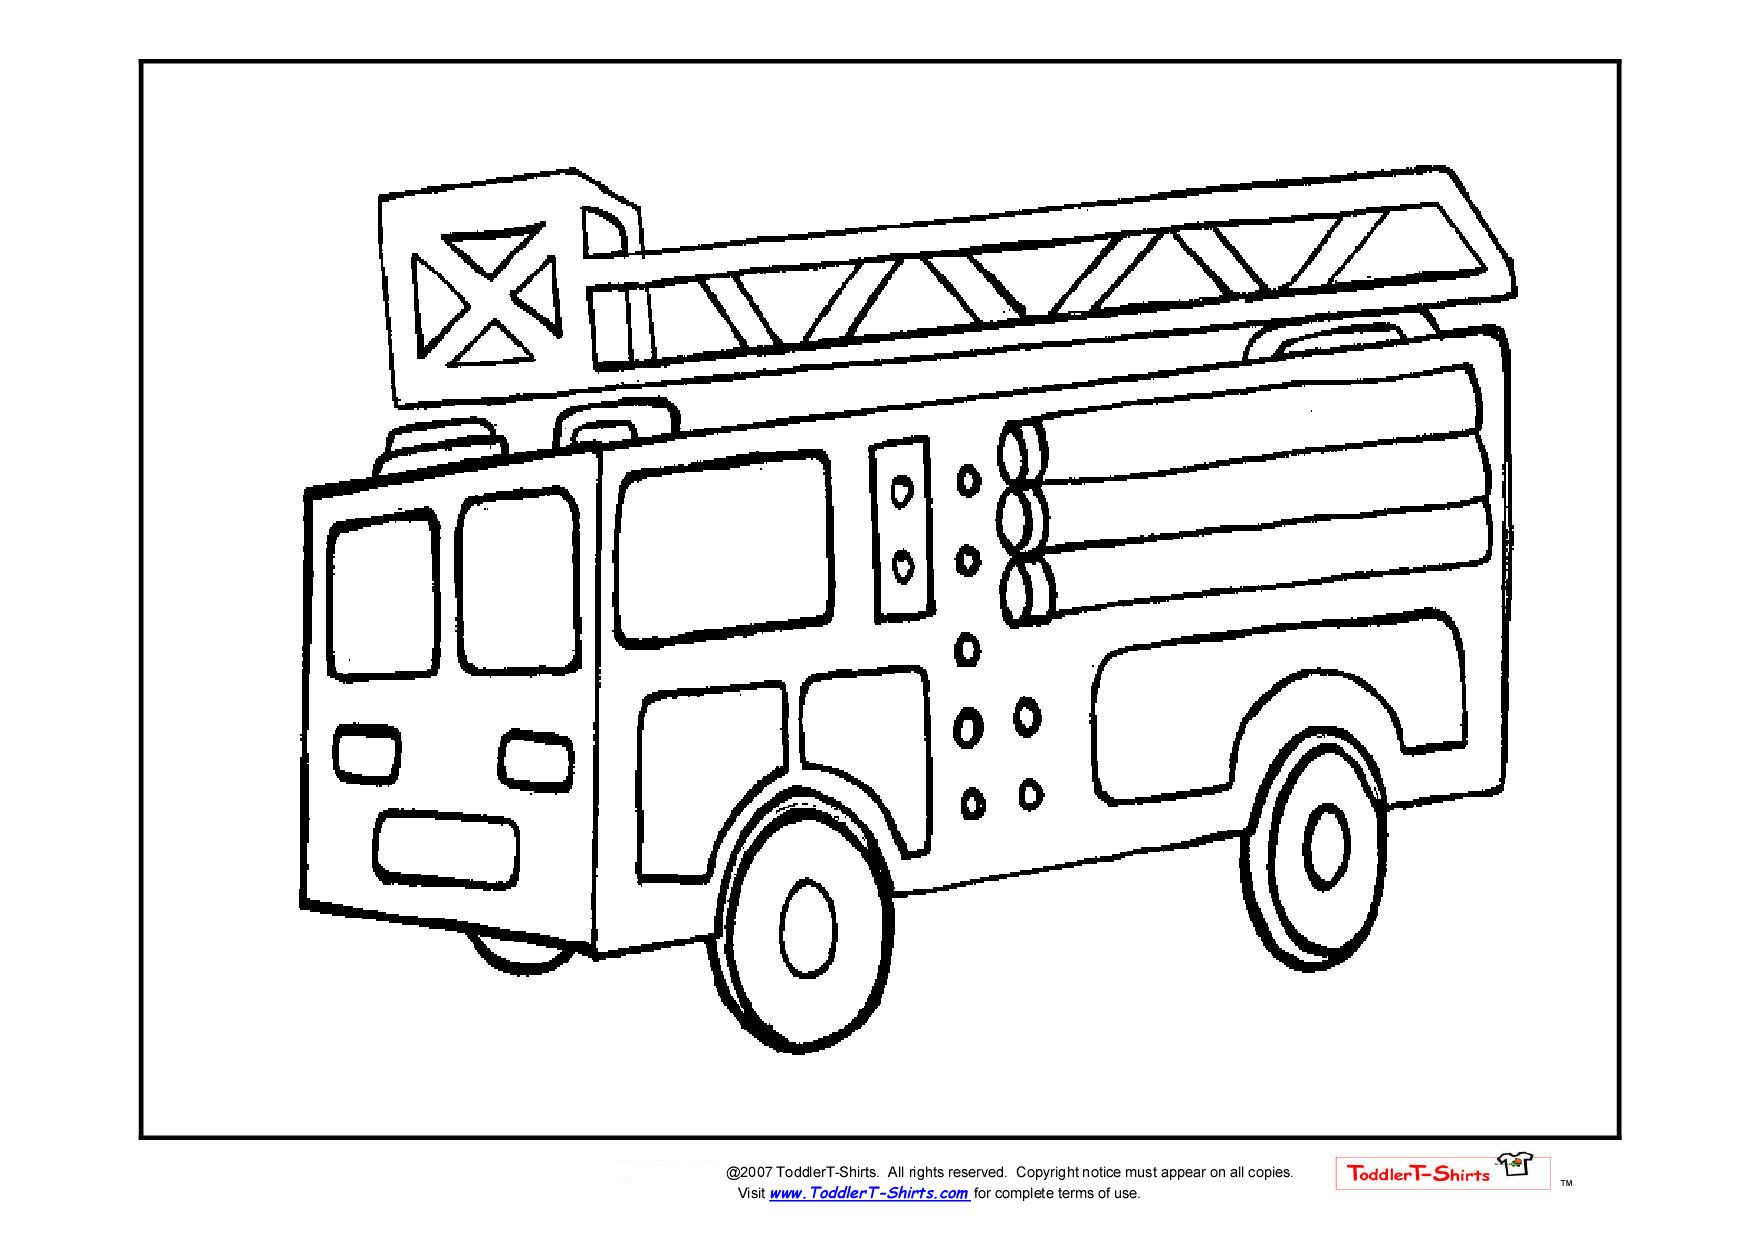 auto flames coloring pages - photo#30